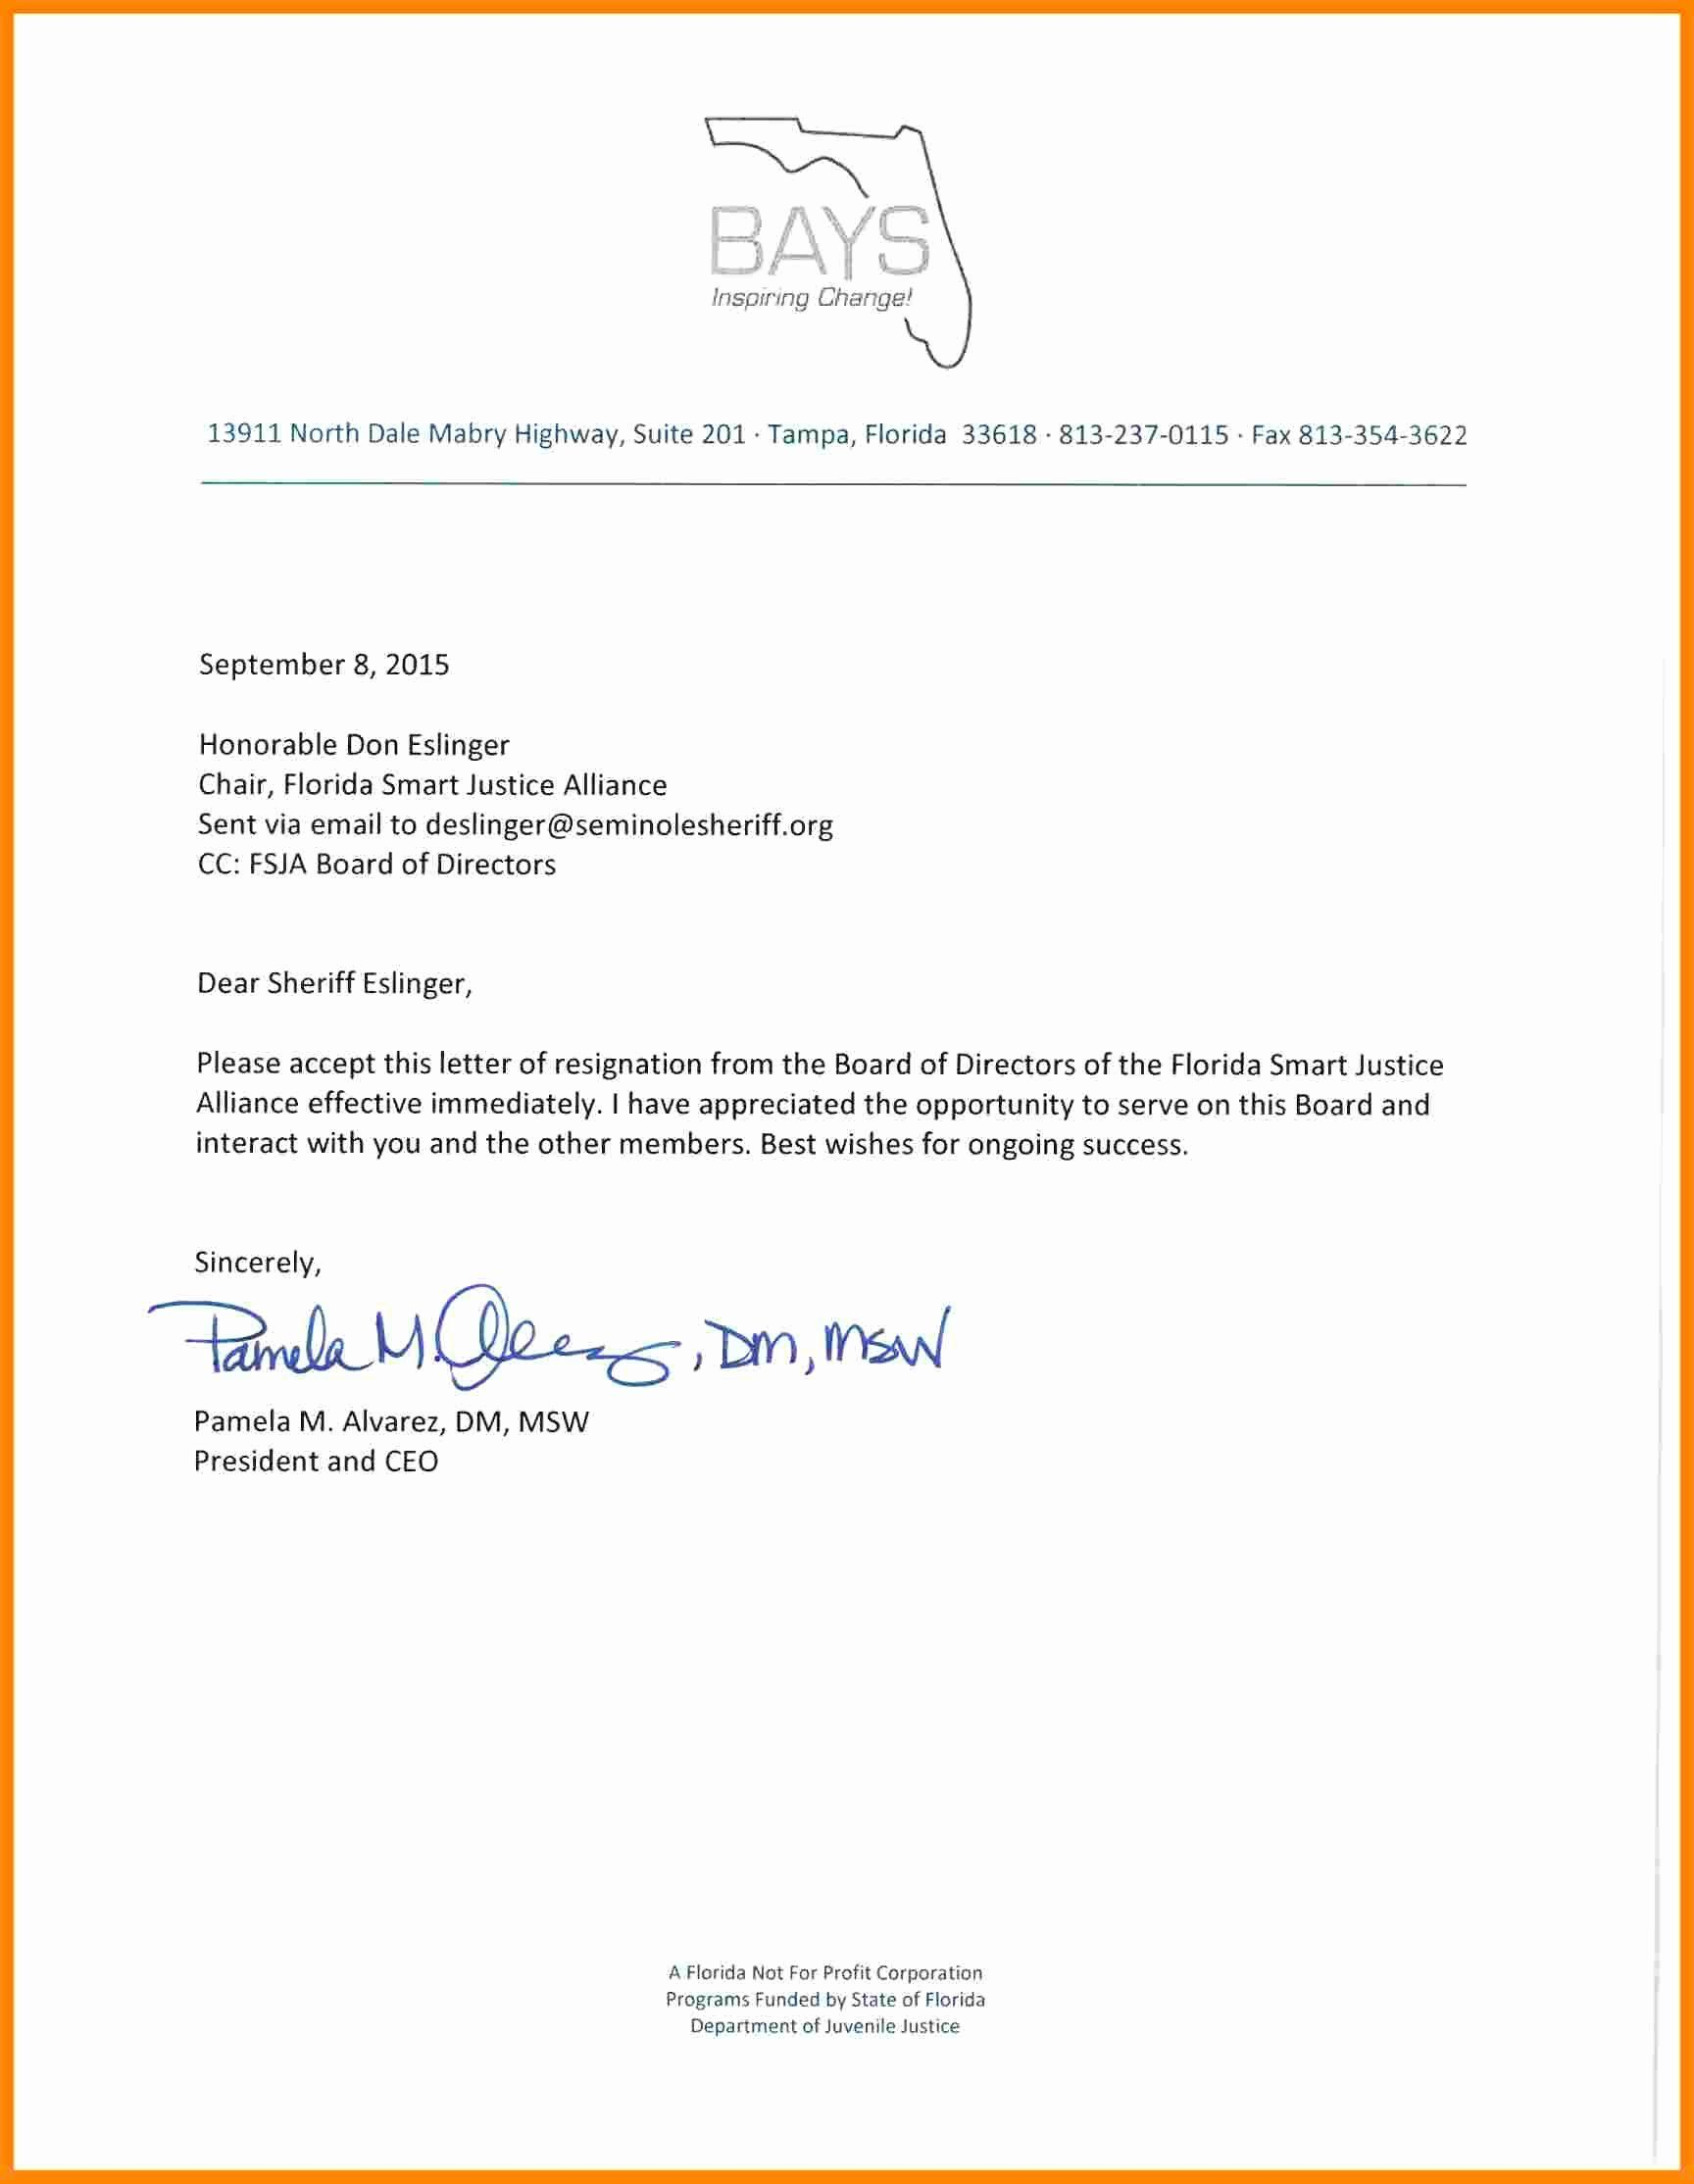 Format Of Resignation Letter From Board Of Directors from i.pinimg.com